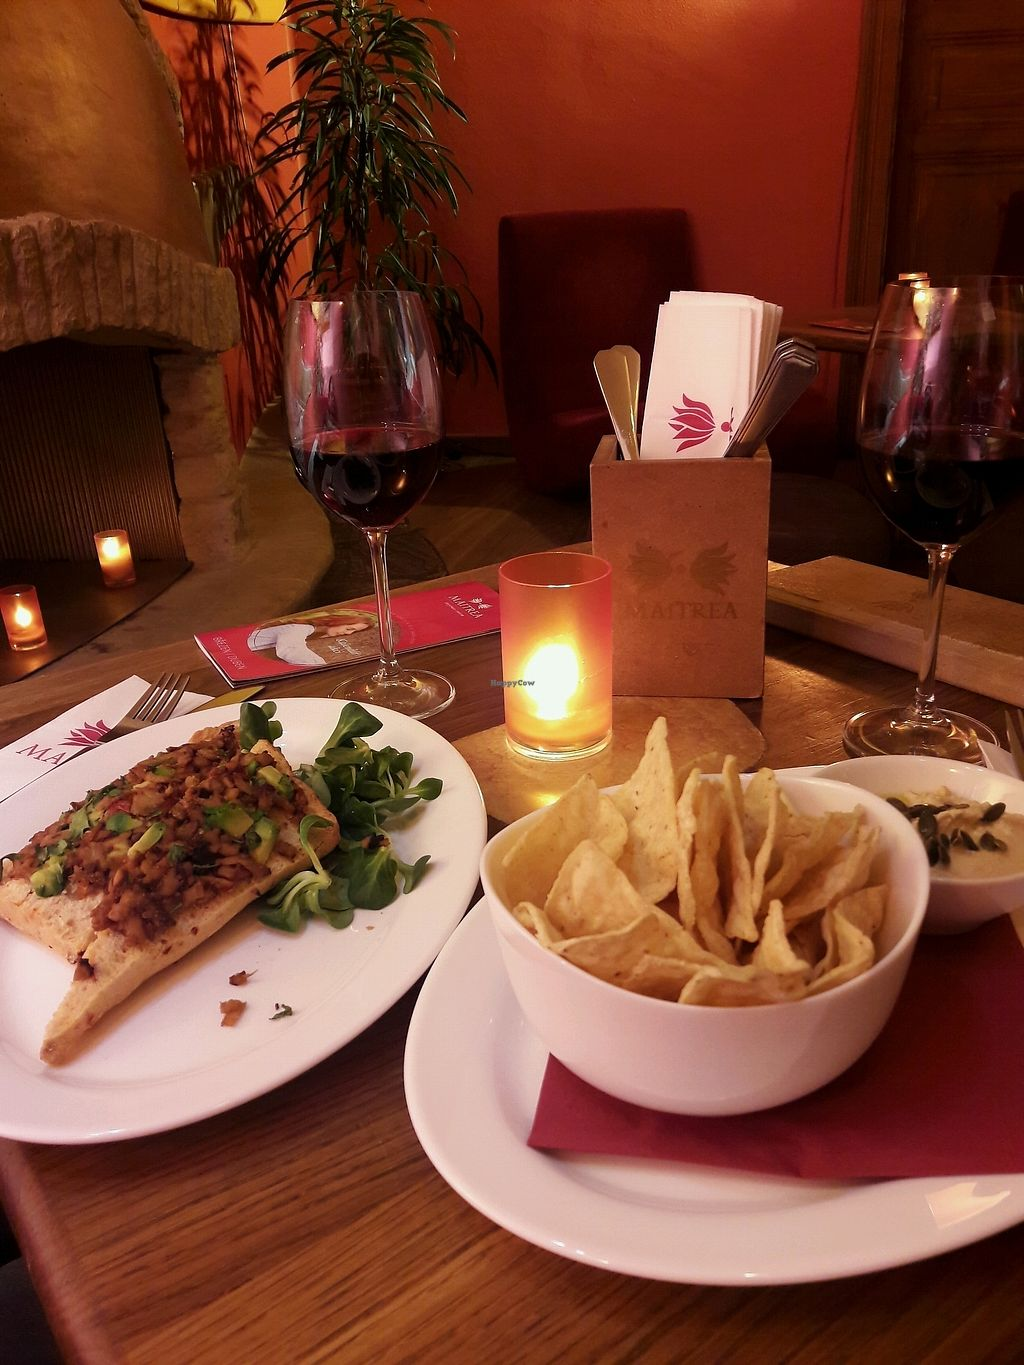 """Photo of Maitrea  by <a href=""""/members/profile/Scarify"""">Scarify</a> <br/>tempeh bruschetta and hummus with nachos <br/> March 30, 2018  - <a href='/contact/abuse/image/17585/378297'>Report</a>"""